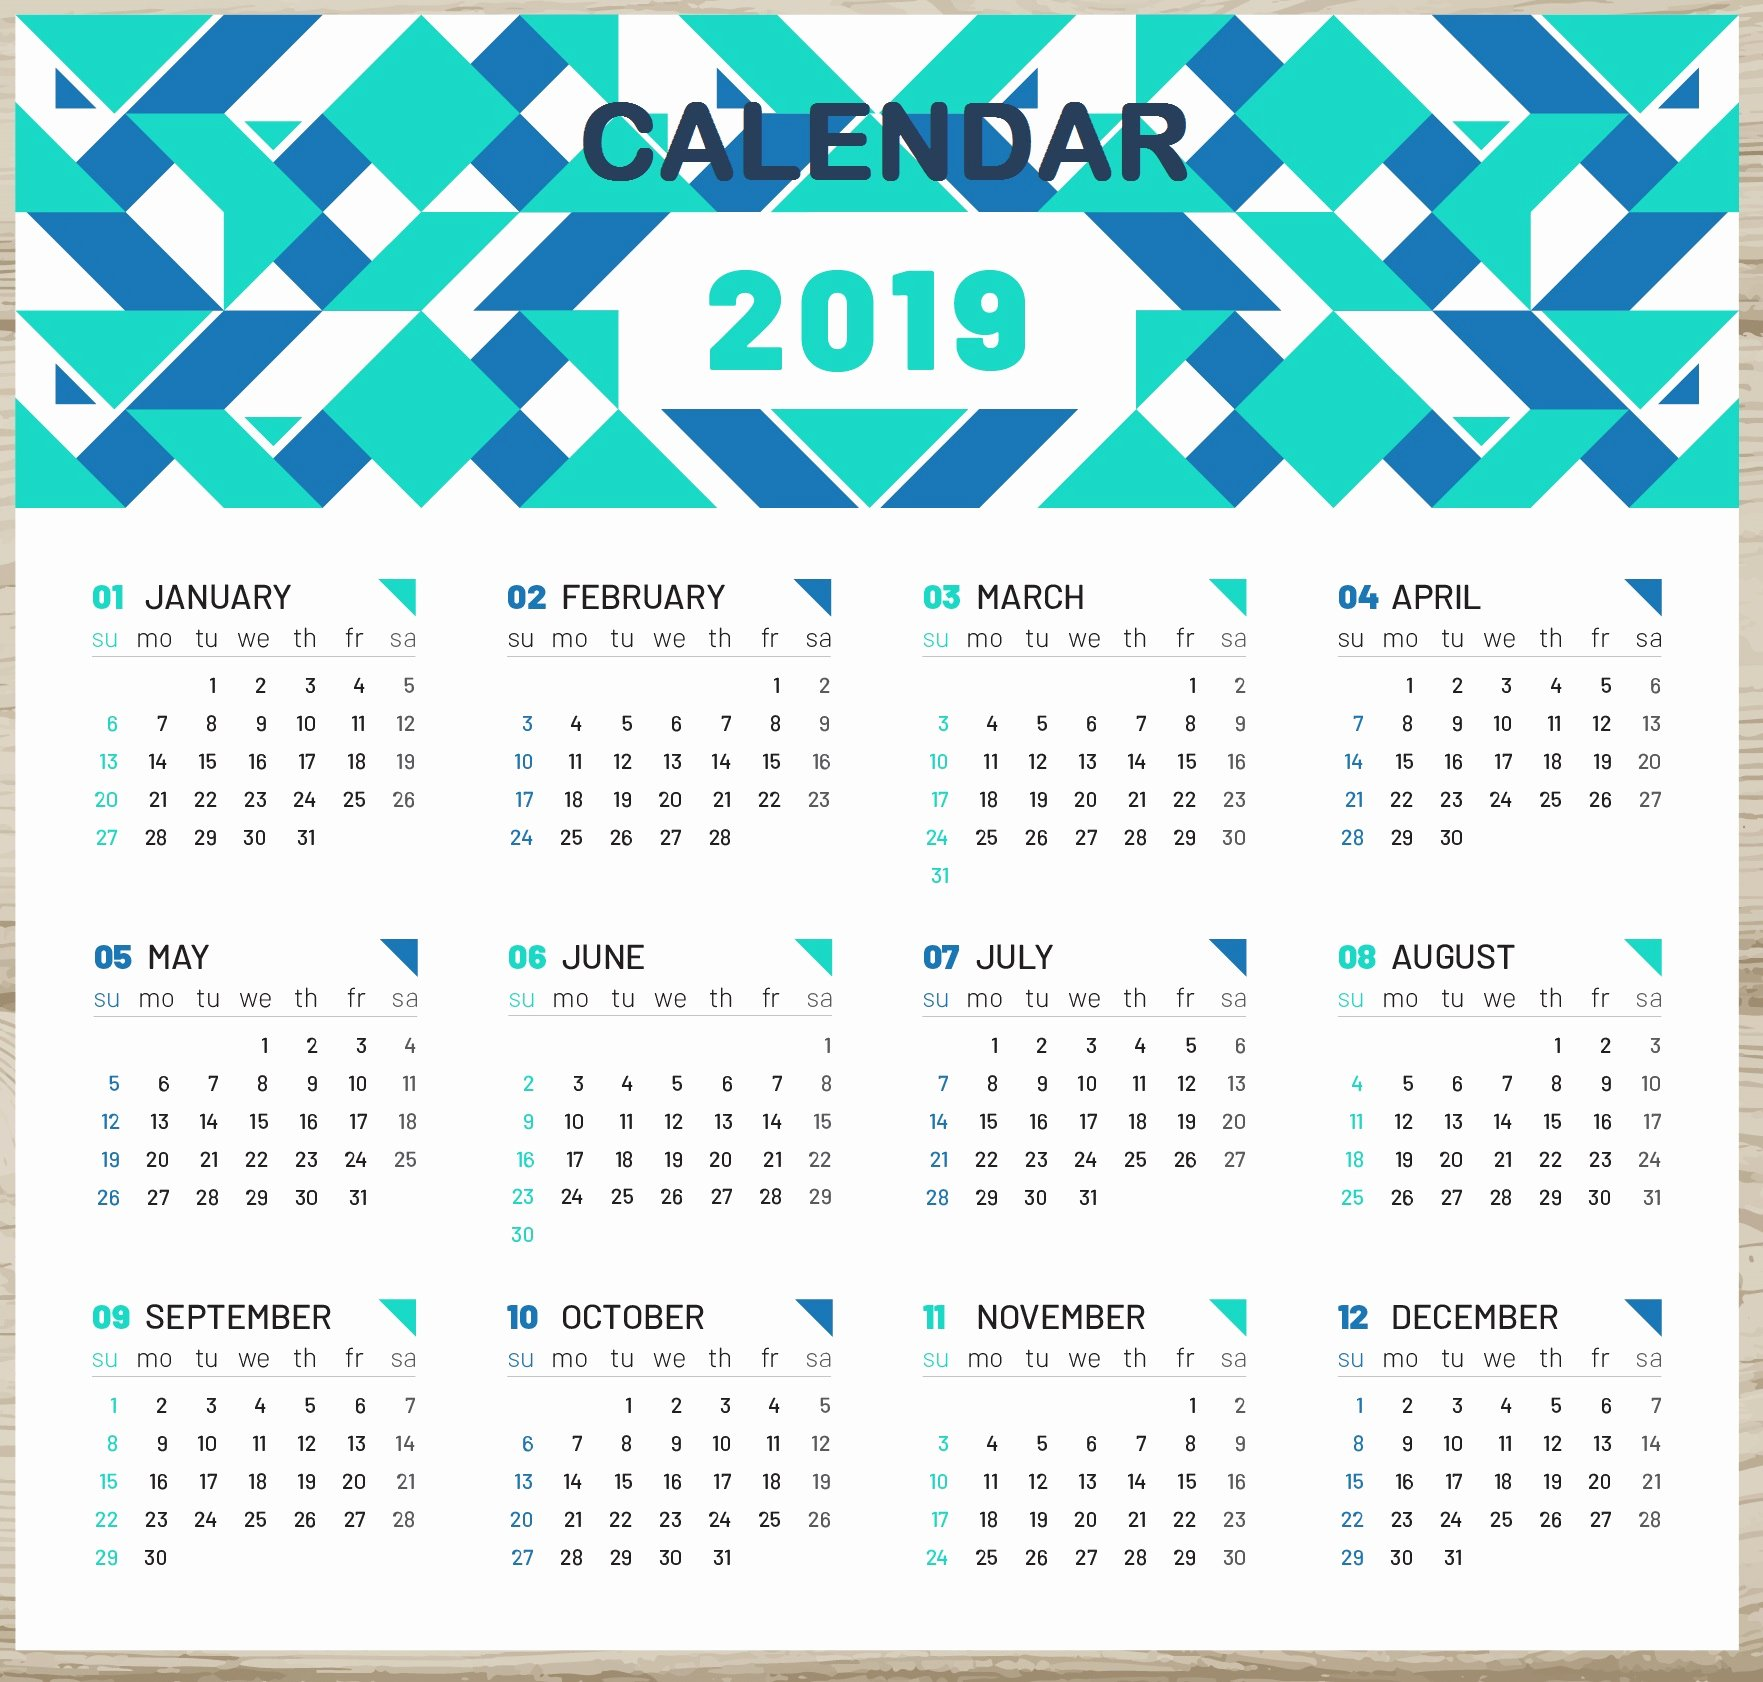 Microsoft Calendar Templates 2019 Unique 2019 Calendar with Week Numbers Printable